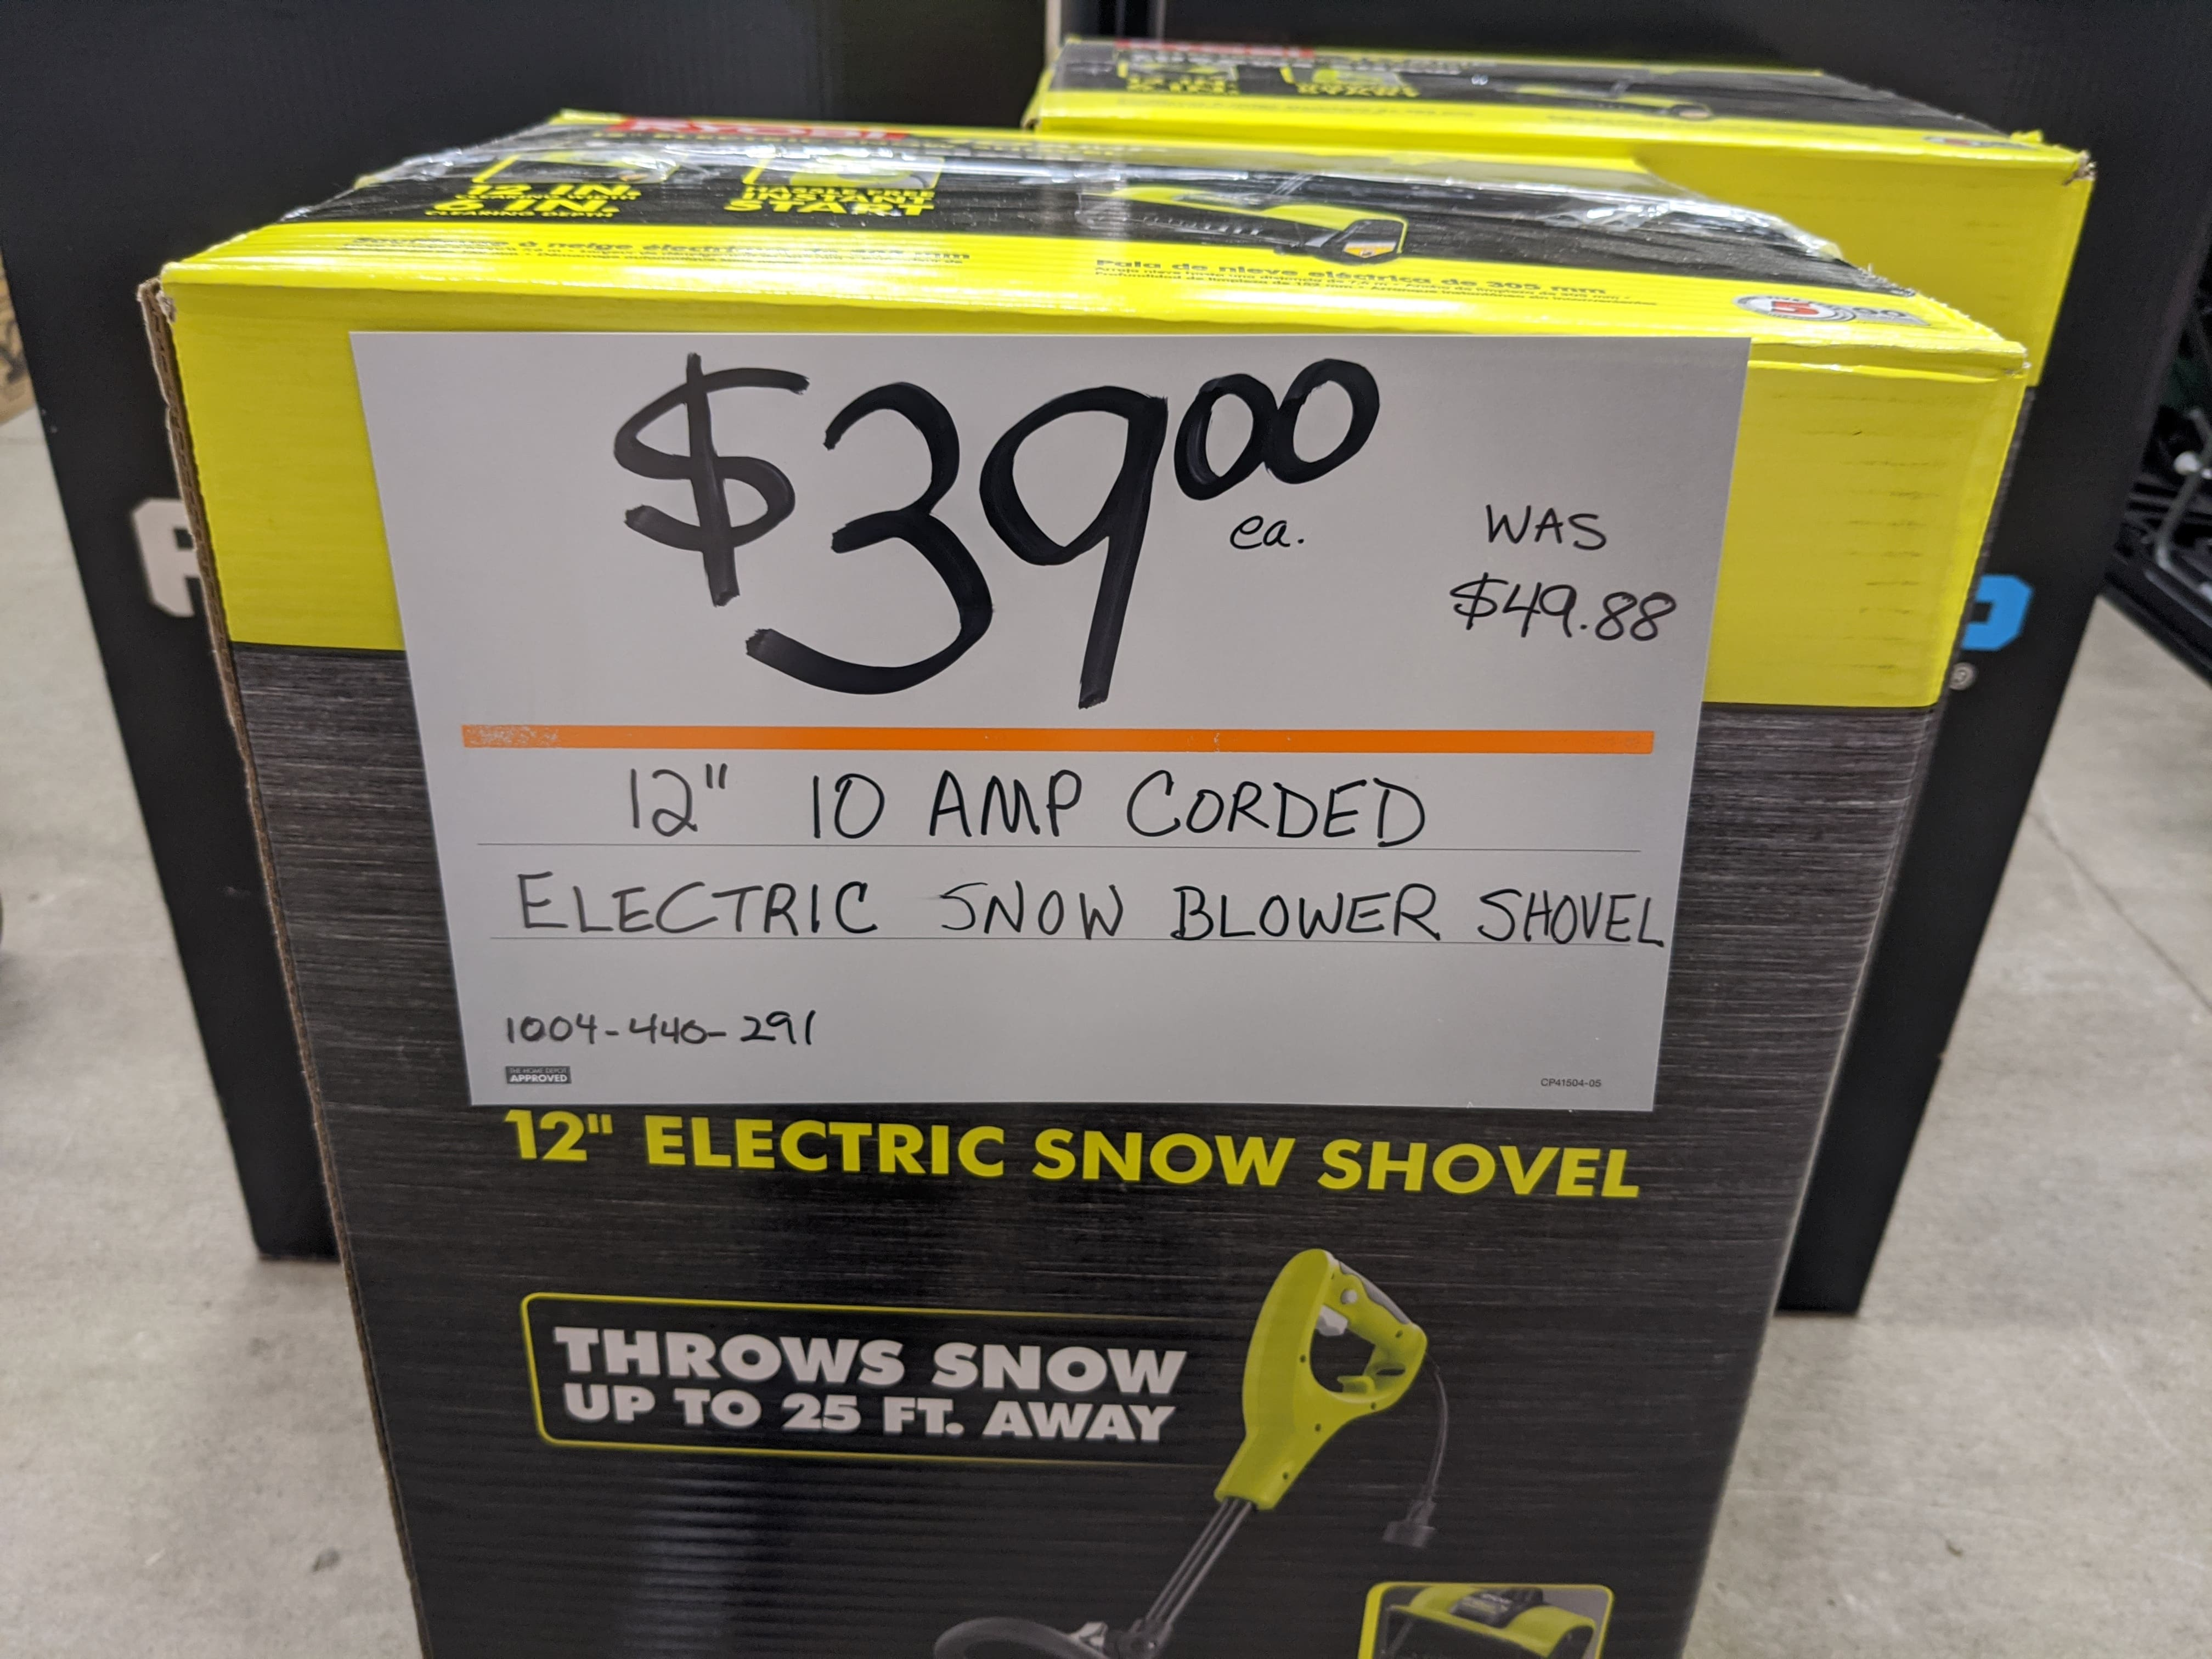 RYOBI 12 in. 10 Amp Corded Electric Snow Blower Shovel $39.00 * In-store  only *  YMMV